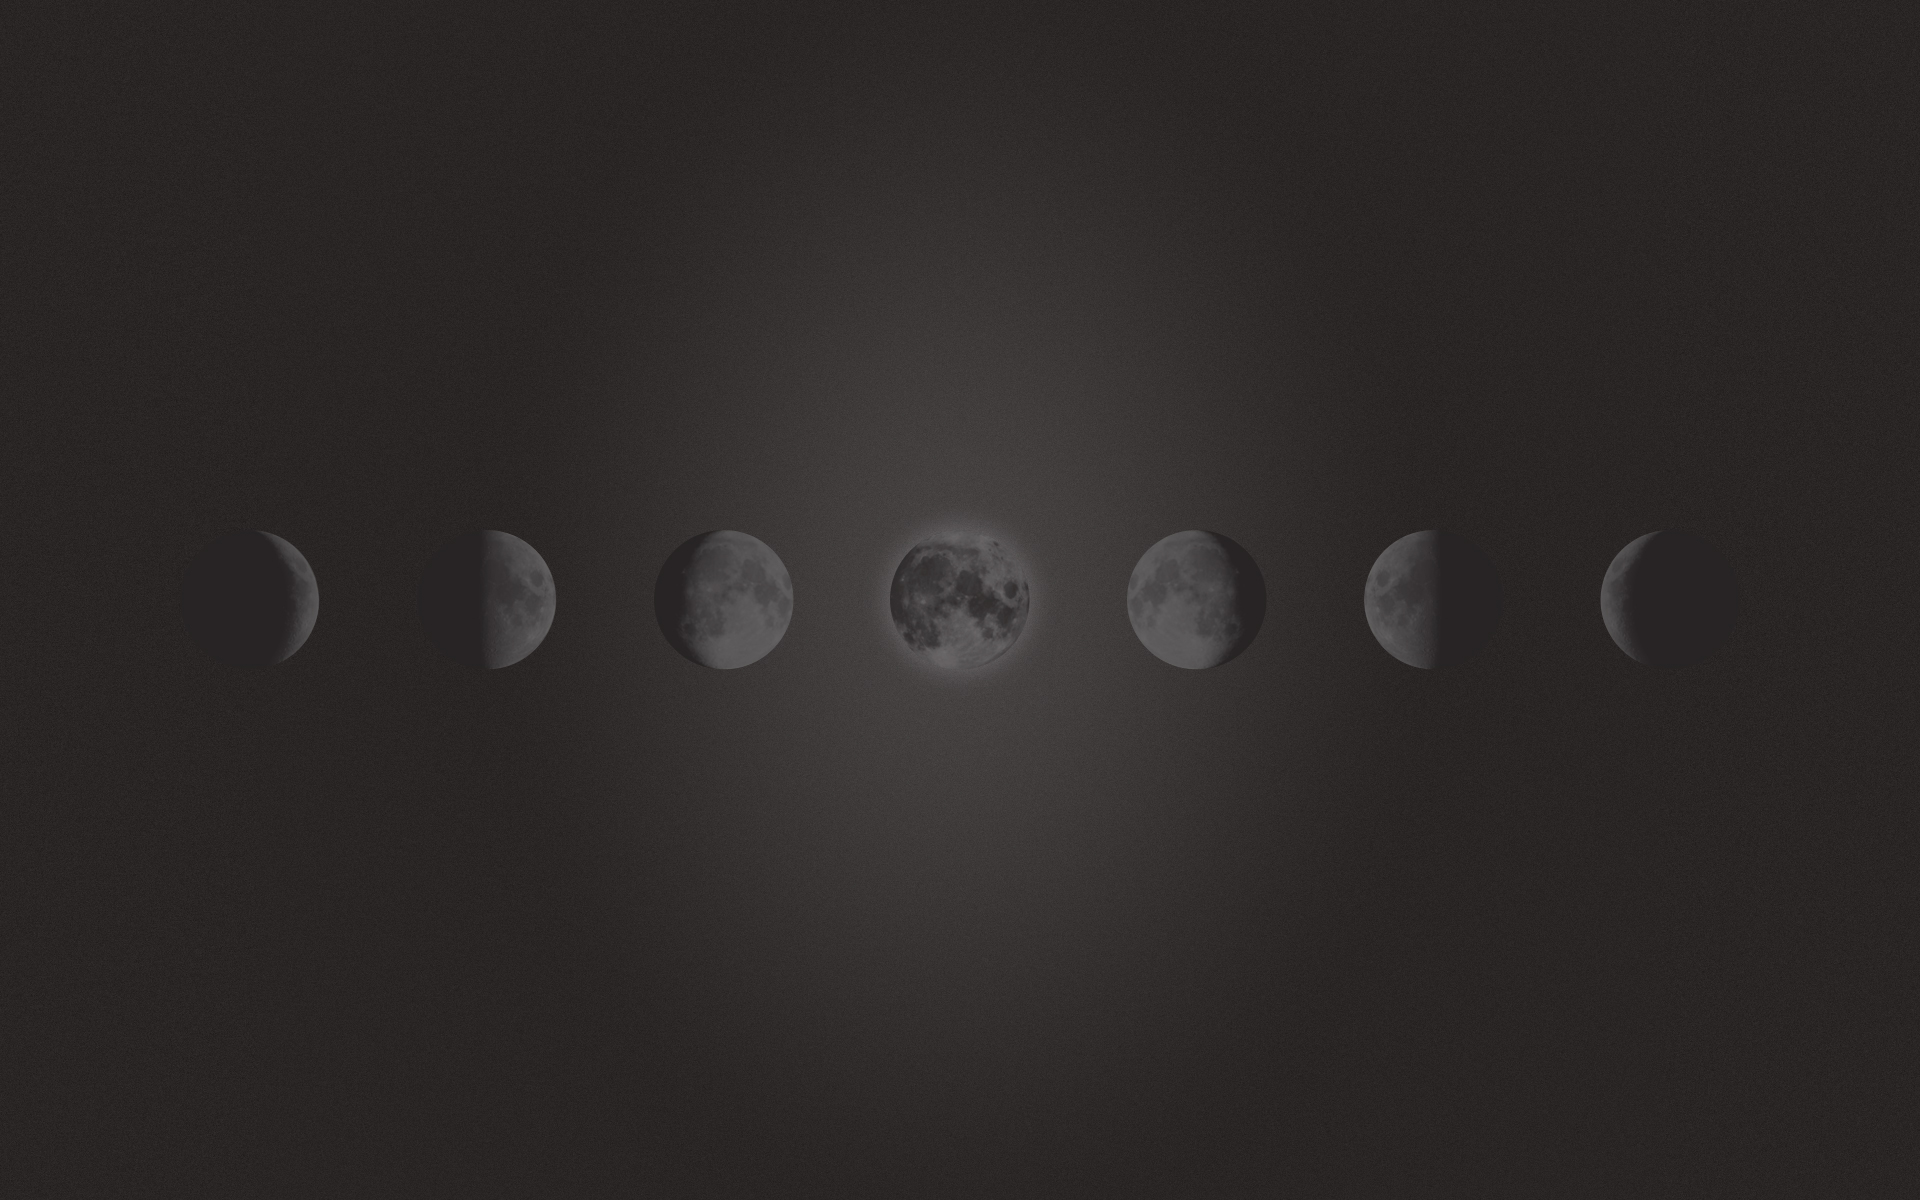 Freebie Phases Of The Moon Wallpaper Maddison Designs